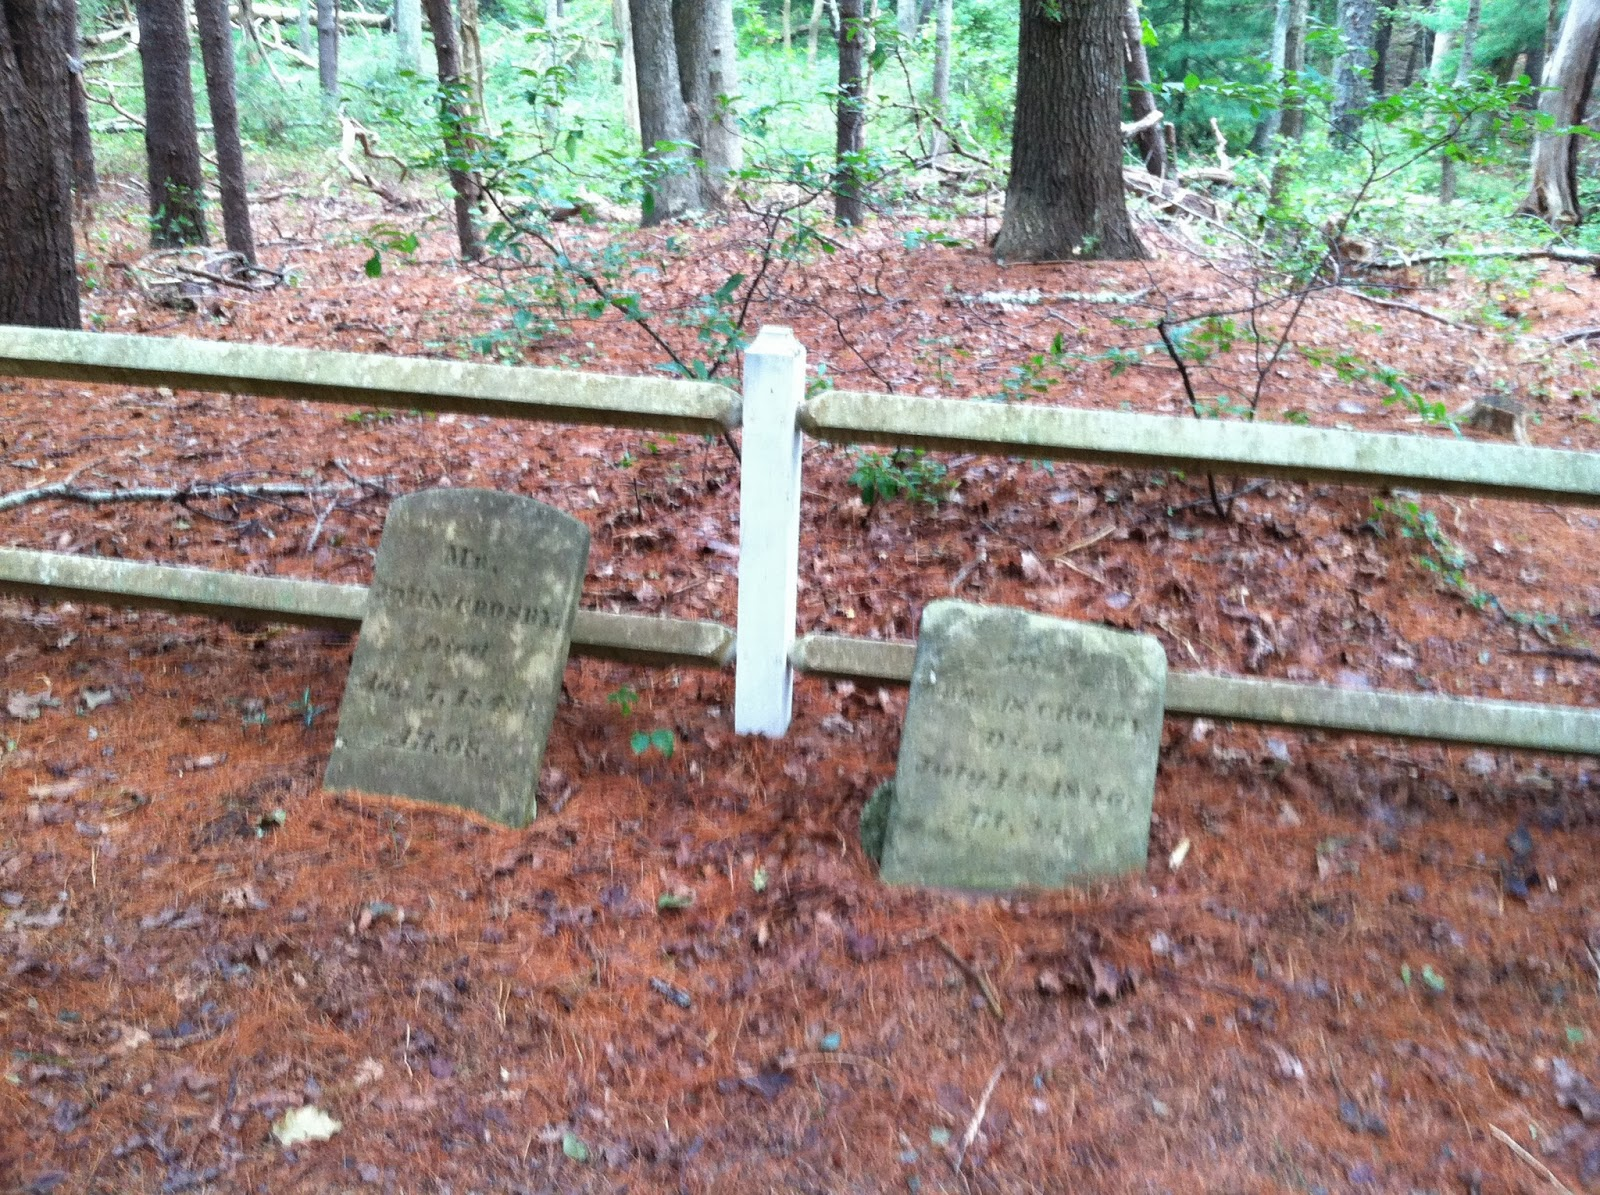 The left stone marks John Crosby - Died August 7, 1843 at the age of